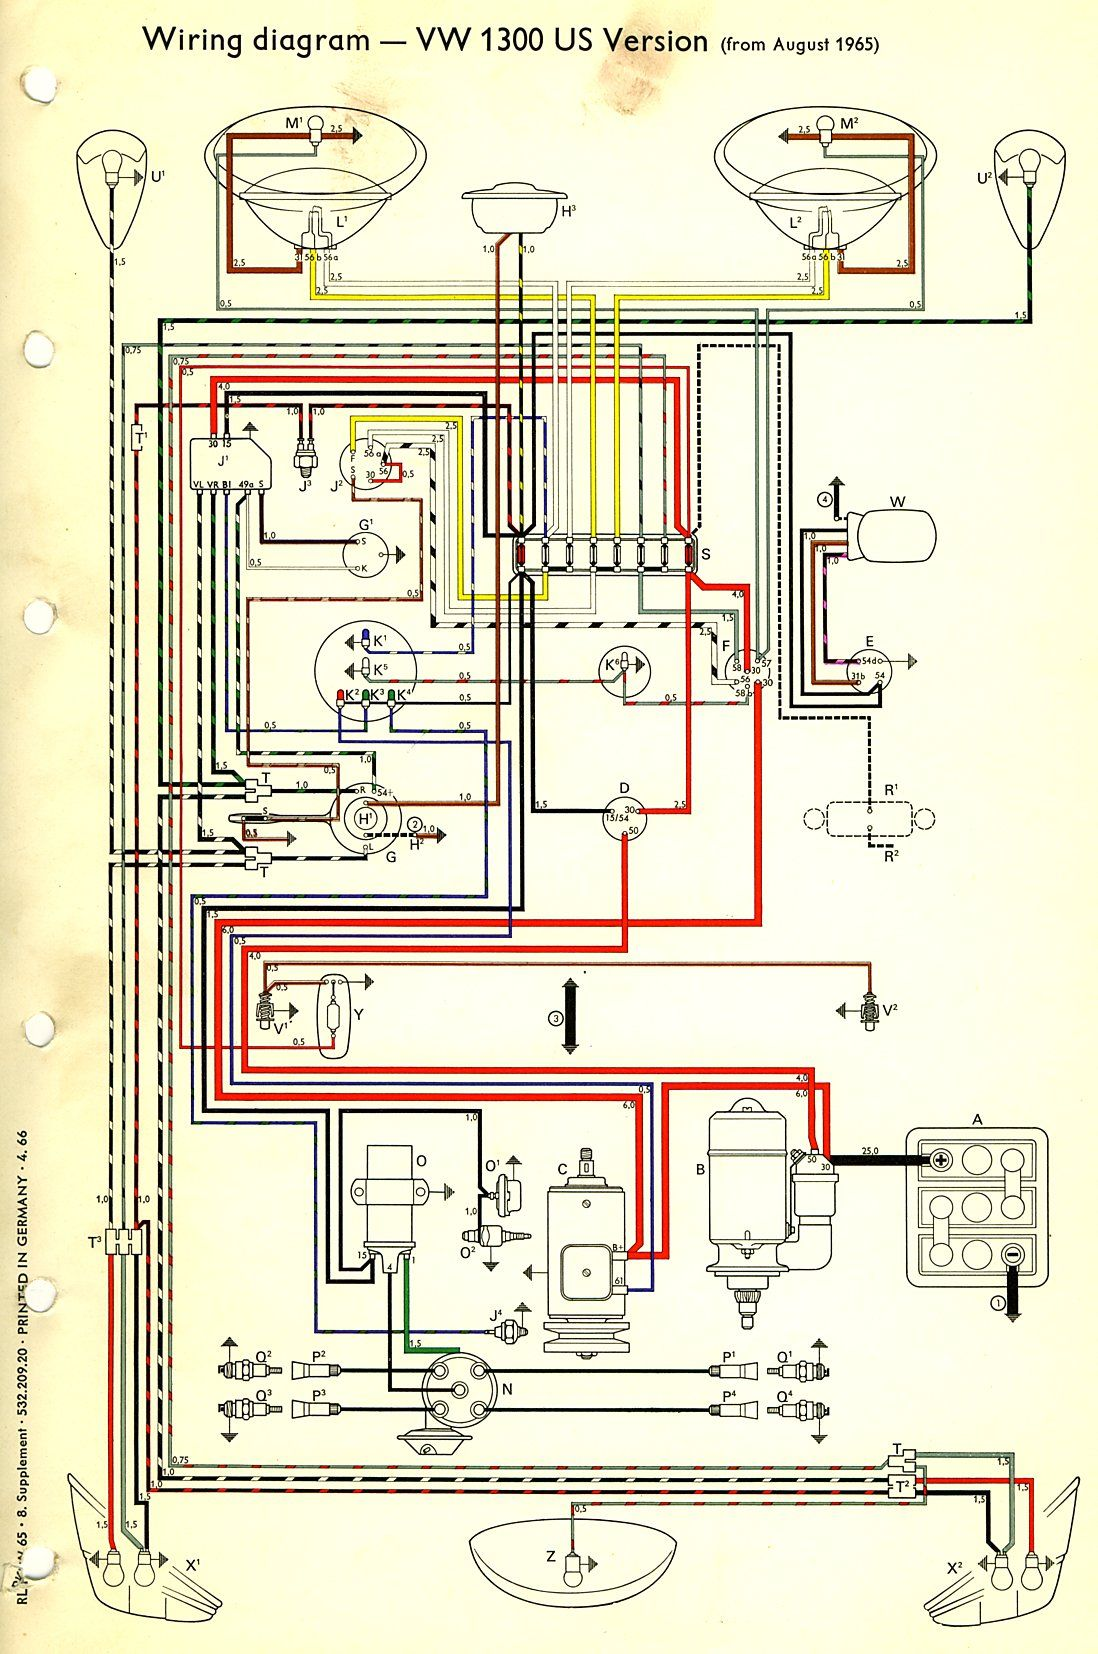 vw bug wiring diagram for dune buggy 3 phase immersion heater schematic google search 69 or